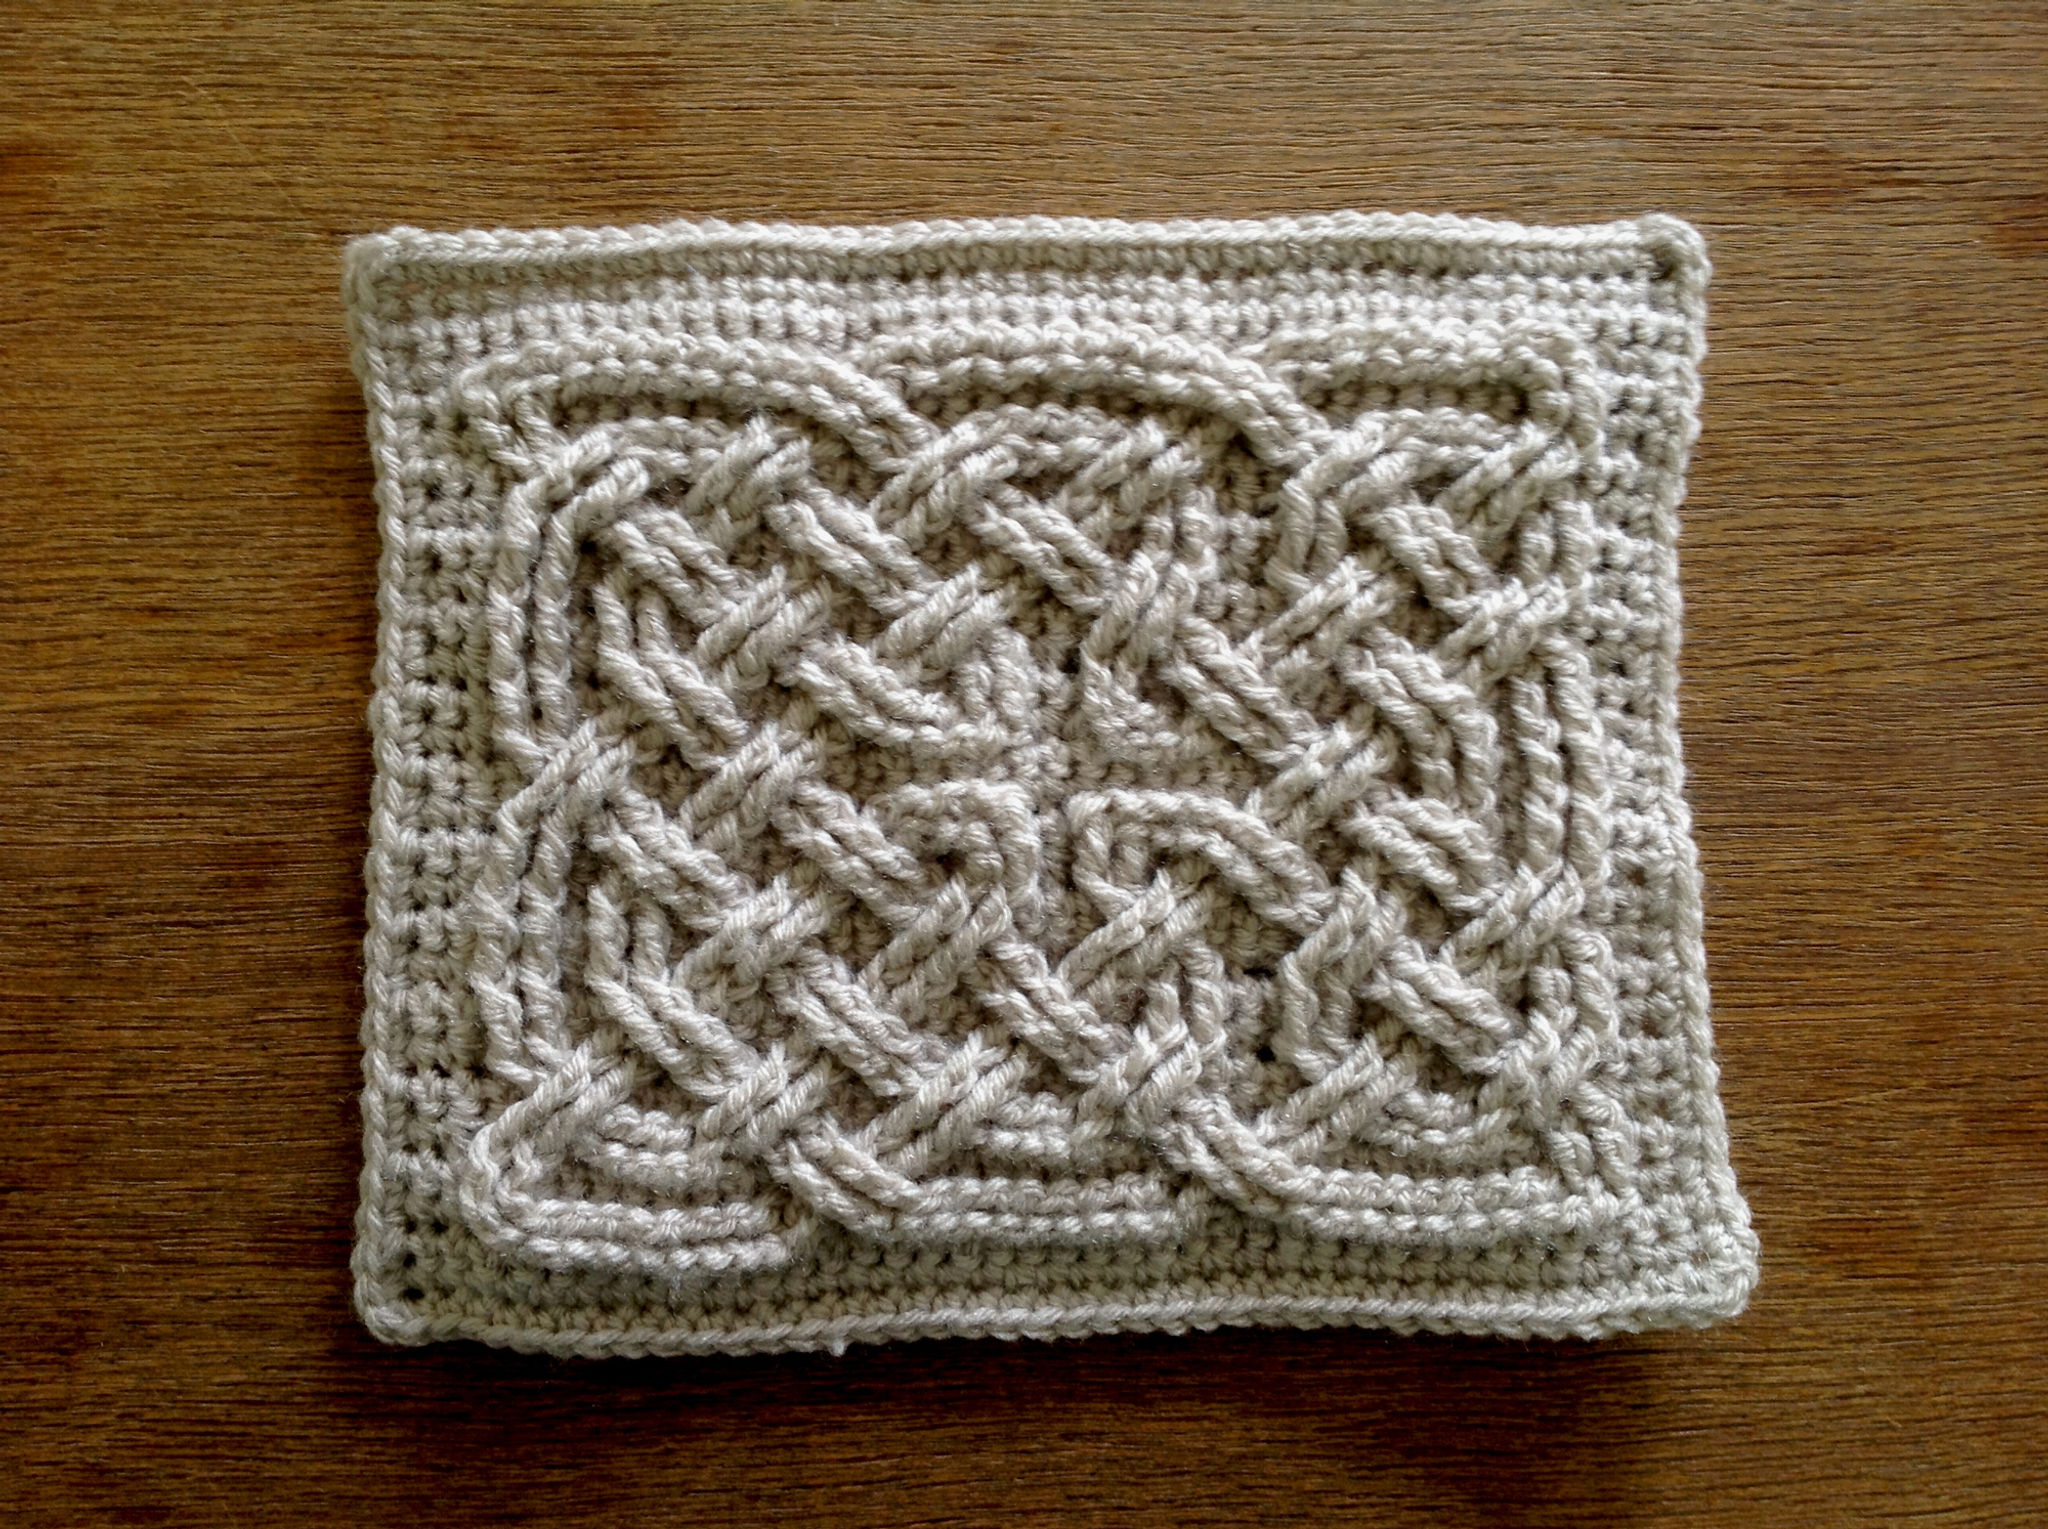 Book Of Kells Square Knot Diagrams Slip Diagram Additionally Stitch Crochet In The End Each Row And Around With Sc Hdc Corner Stitches Last Then To Join